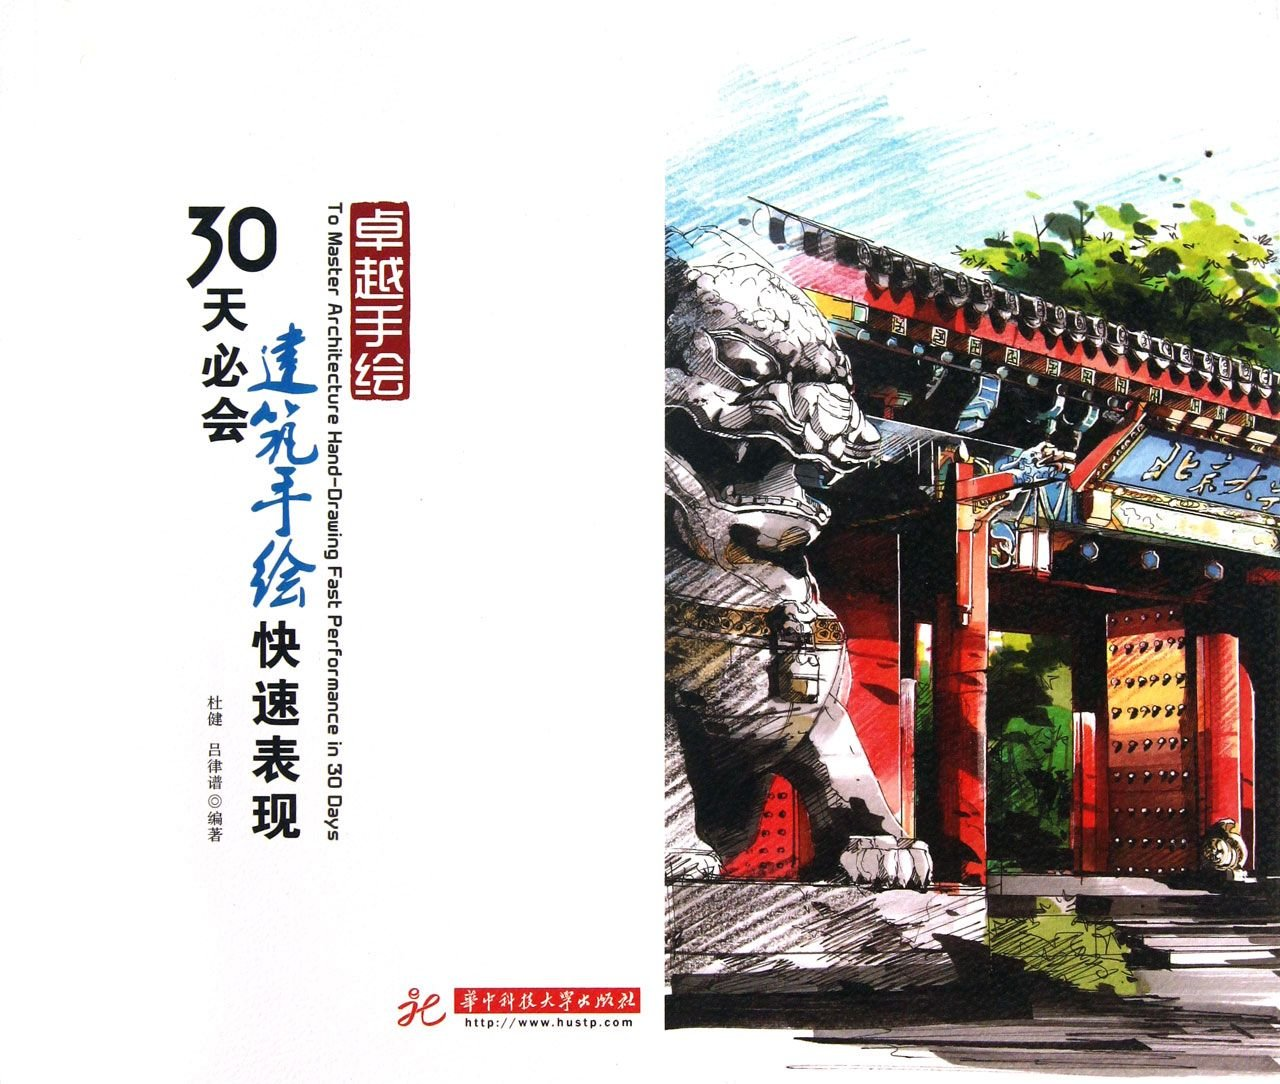 Download Fast Hand-drawn Architectural Designs to Master in a Month (Excellent Hand-drawn Designs) (Chinese Edition) pdf epub